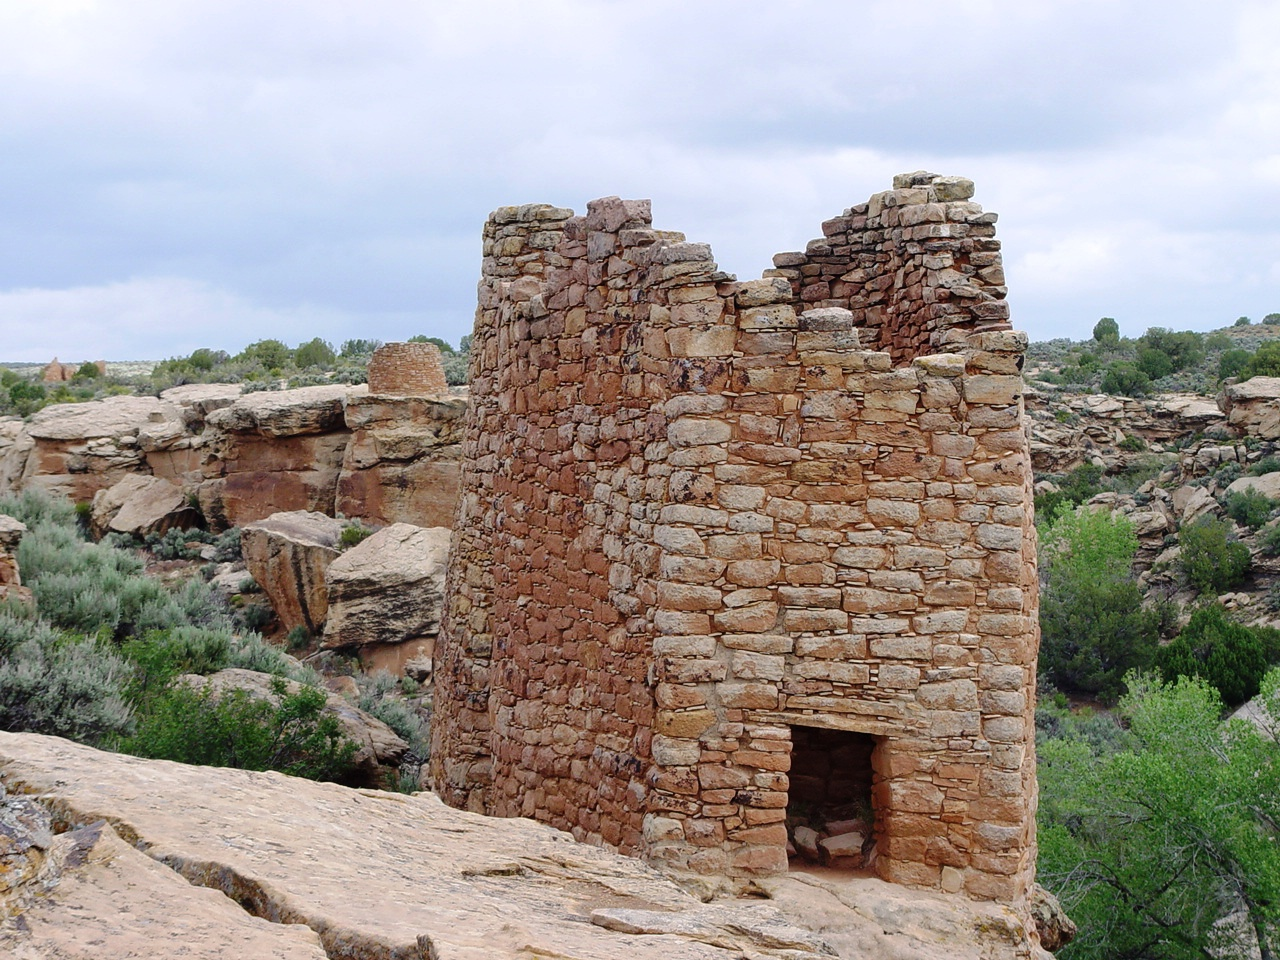 Close-up of ancient Twin Towers, Little Ruin Canyon, Hovenweep National Monument, Utah - Click for larger image (http://jamesmcgillis.com)